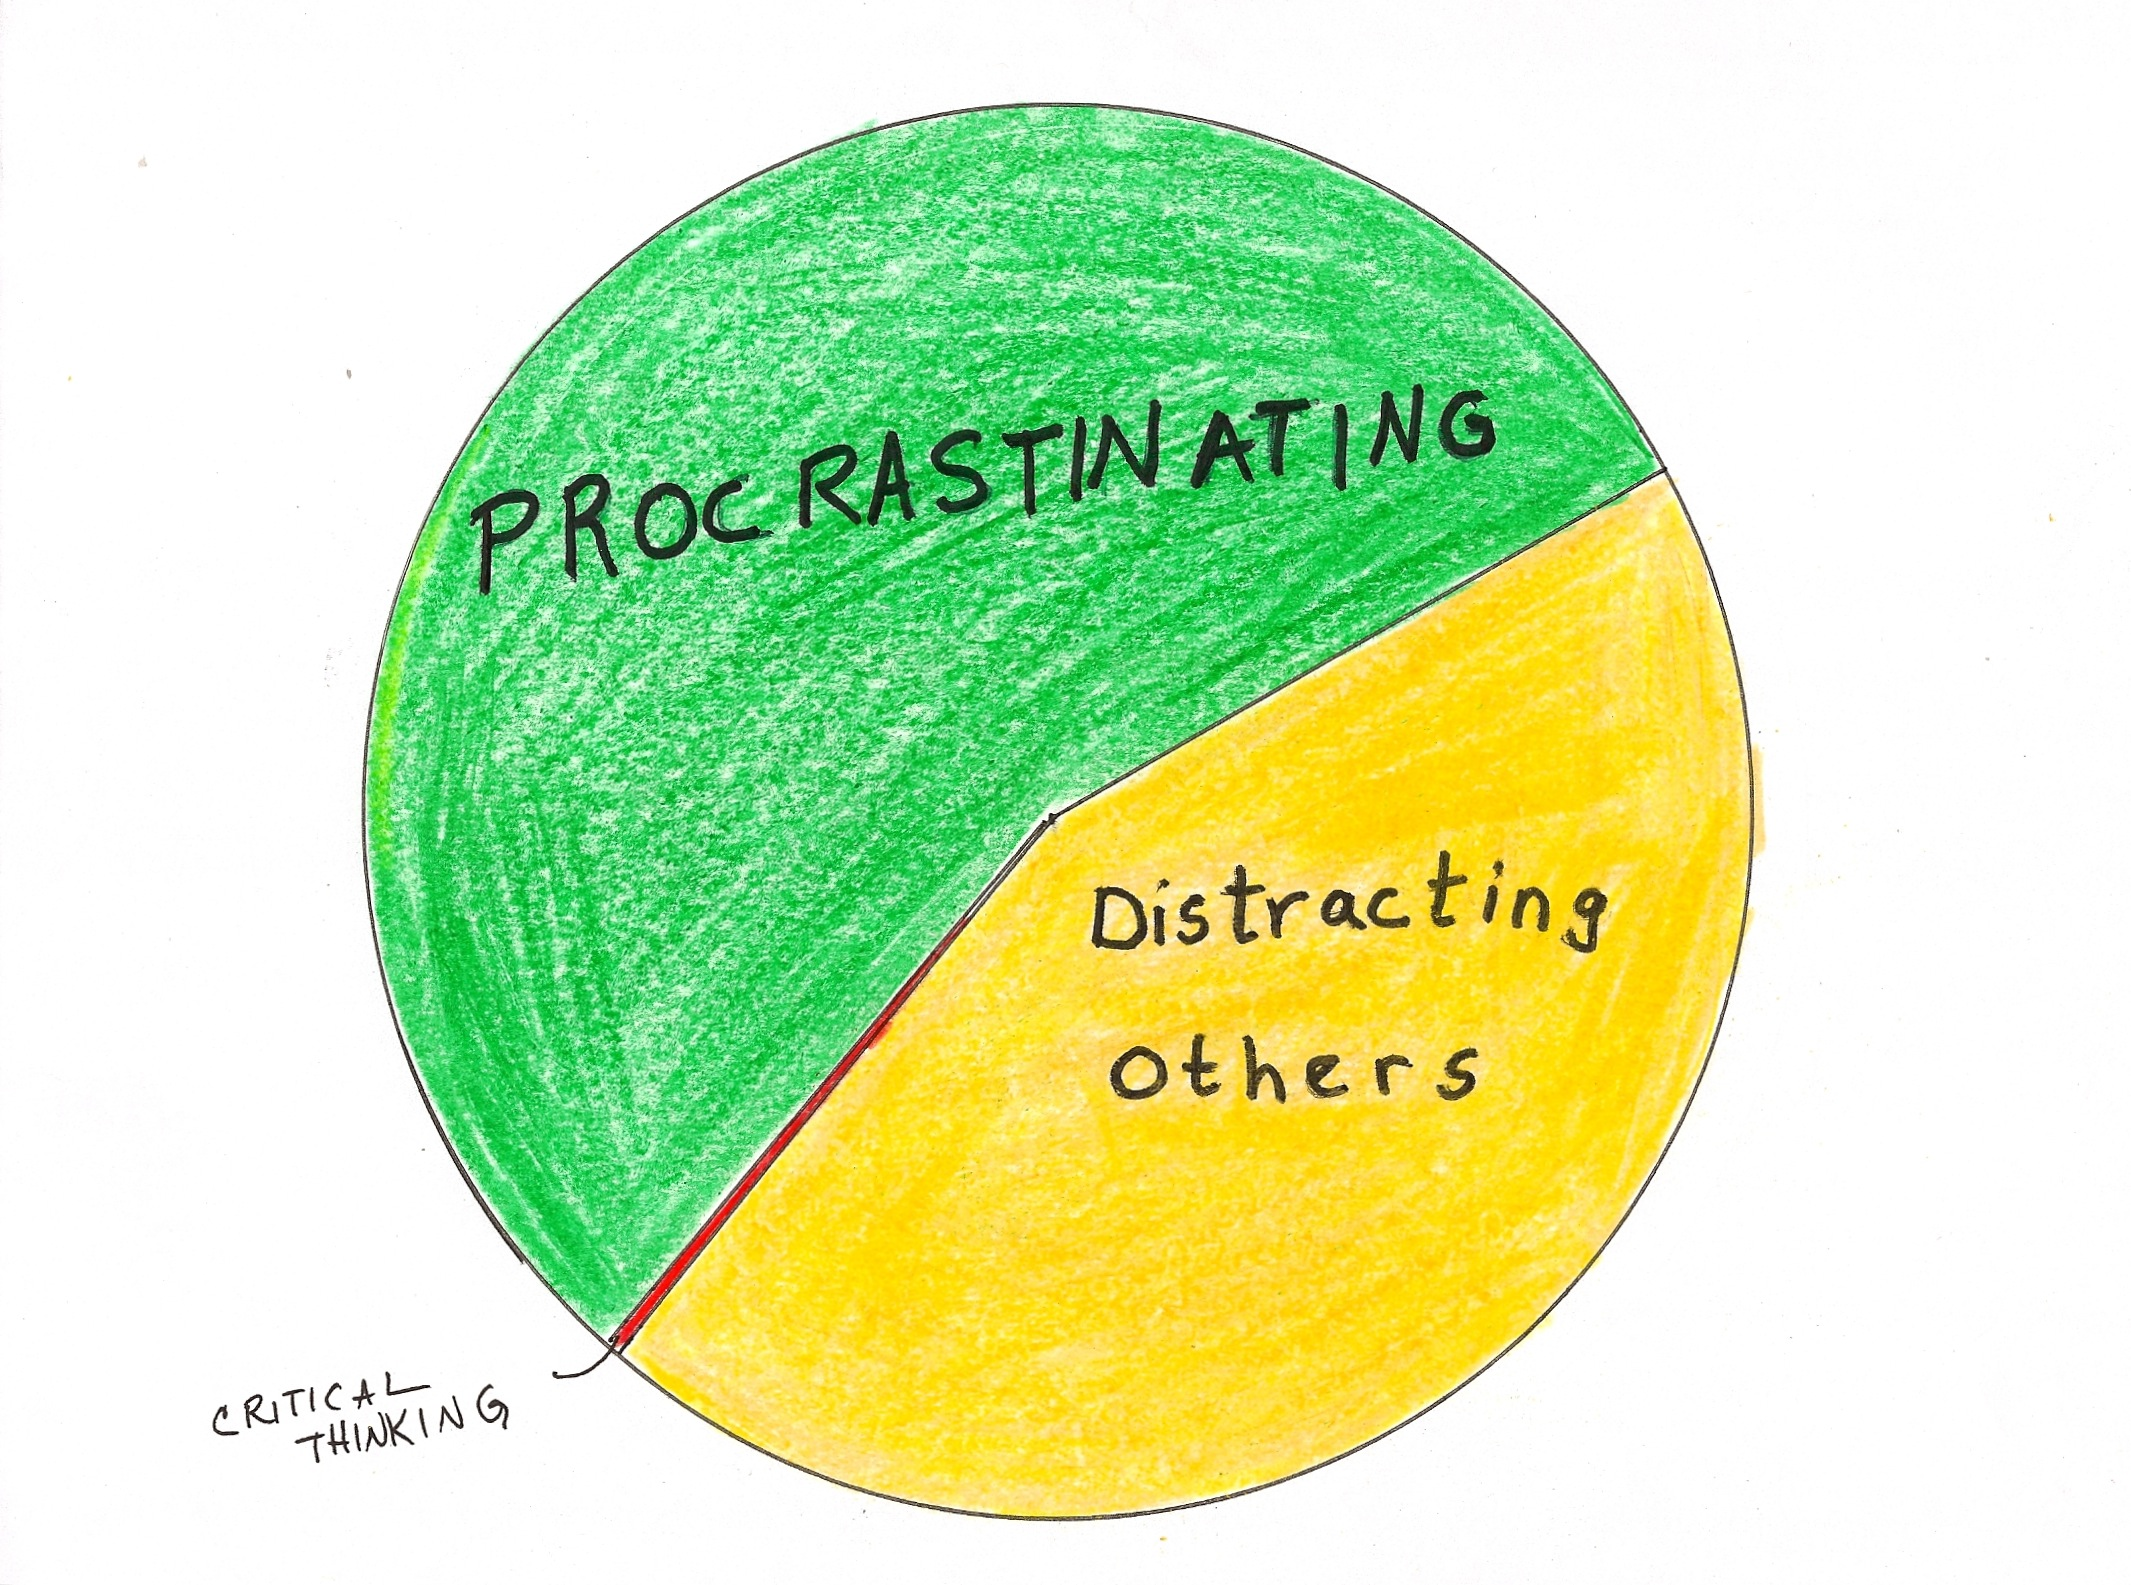 Drawn office jim Promotion Pie The Chart The